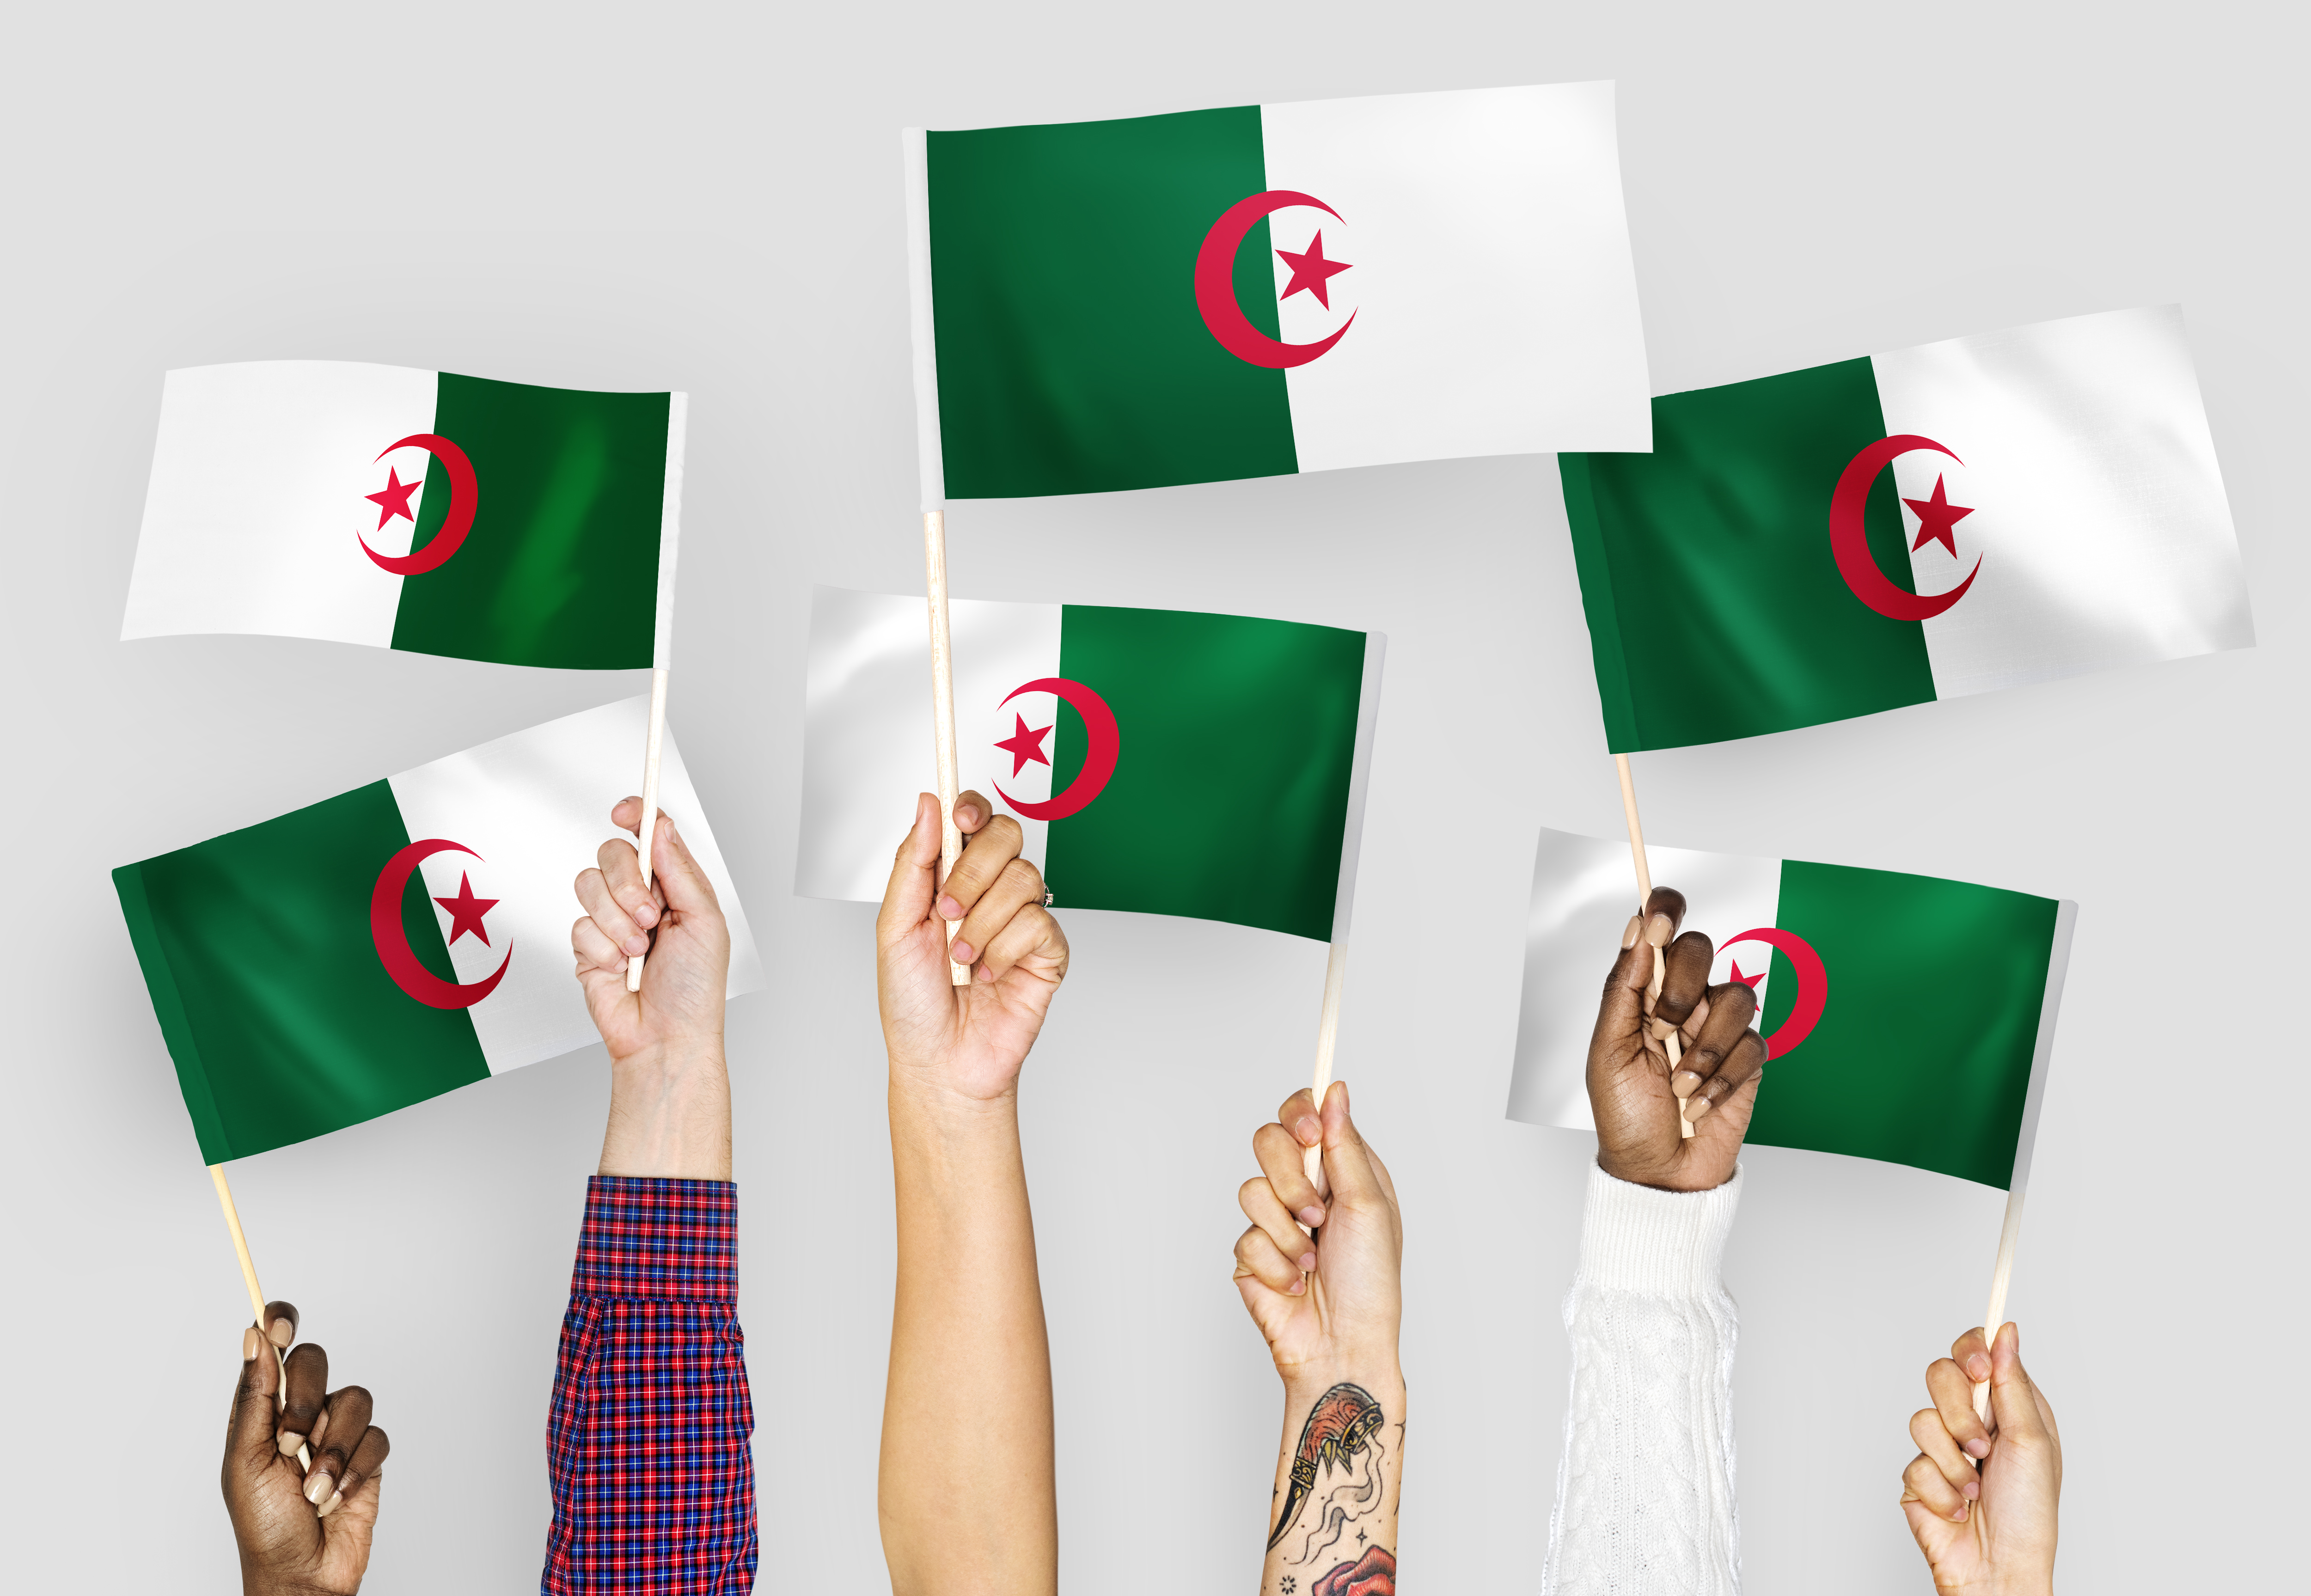 Algerian Feminism and the Struggle for Women's Equality